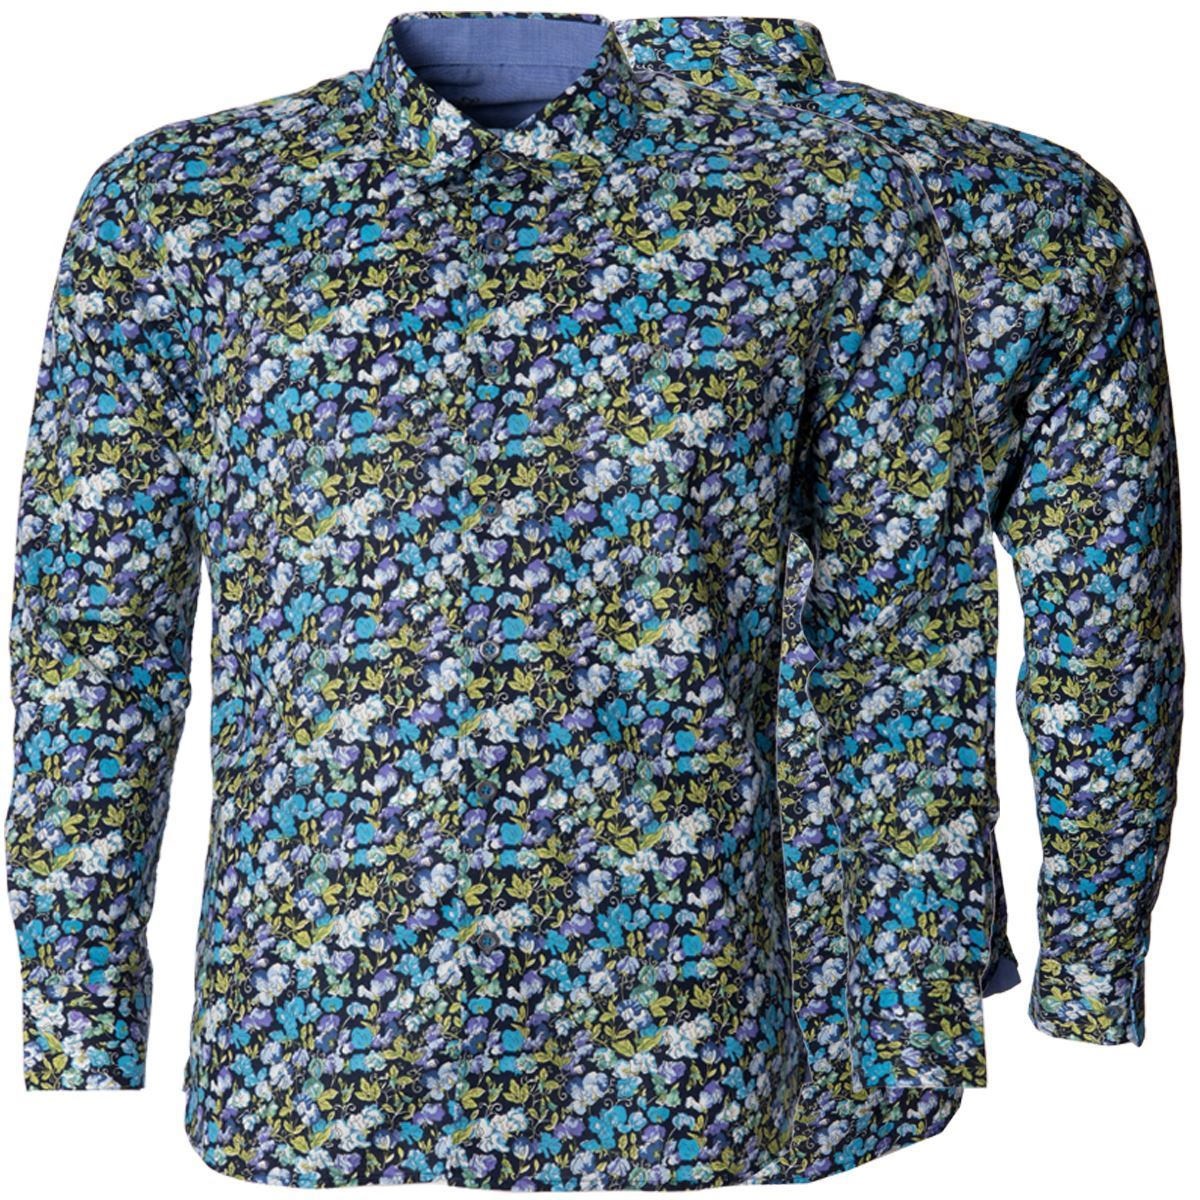 Mens Summer Floral Printed Button Down Collared Long